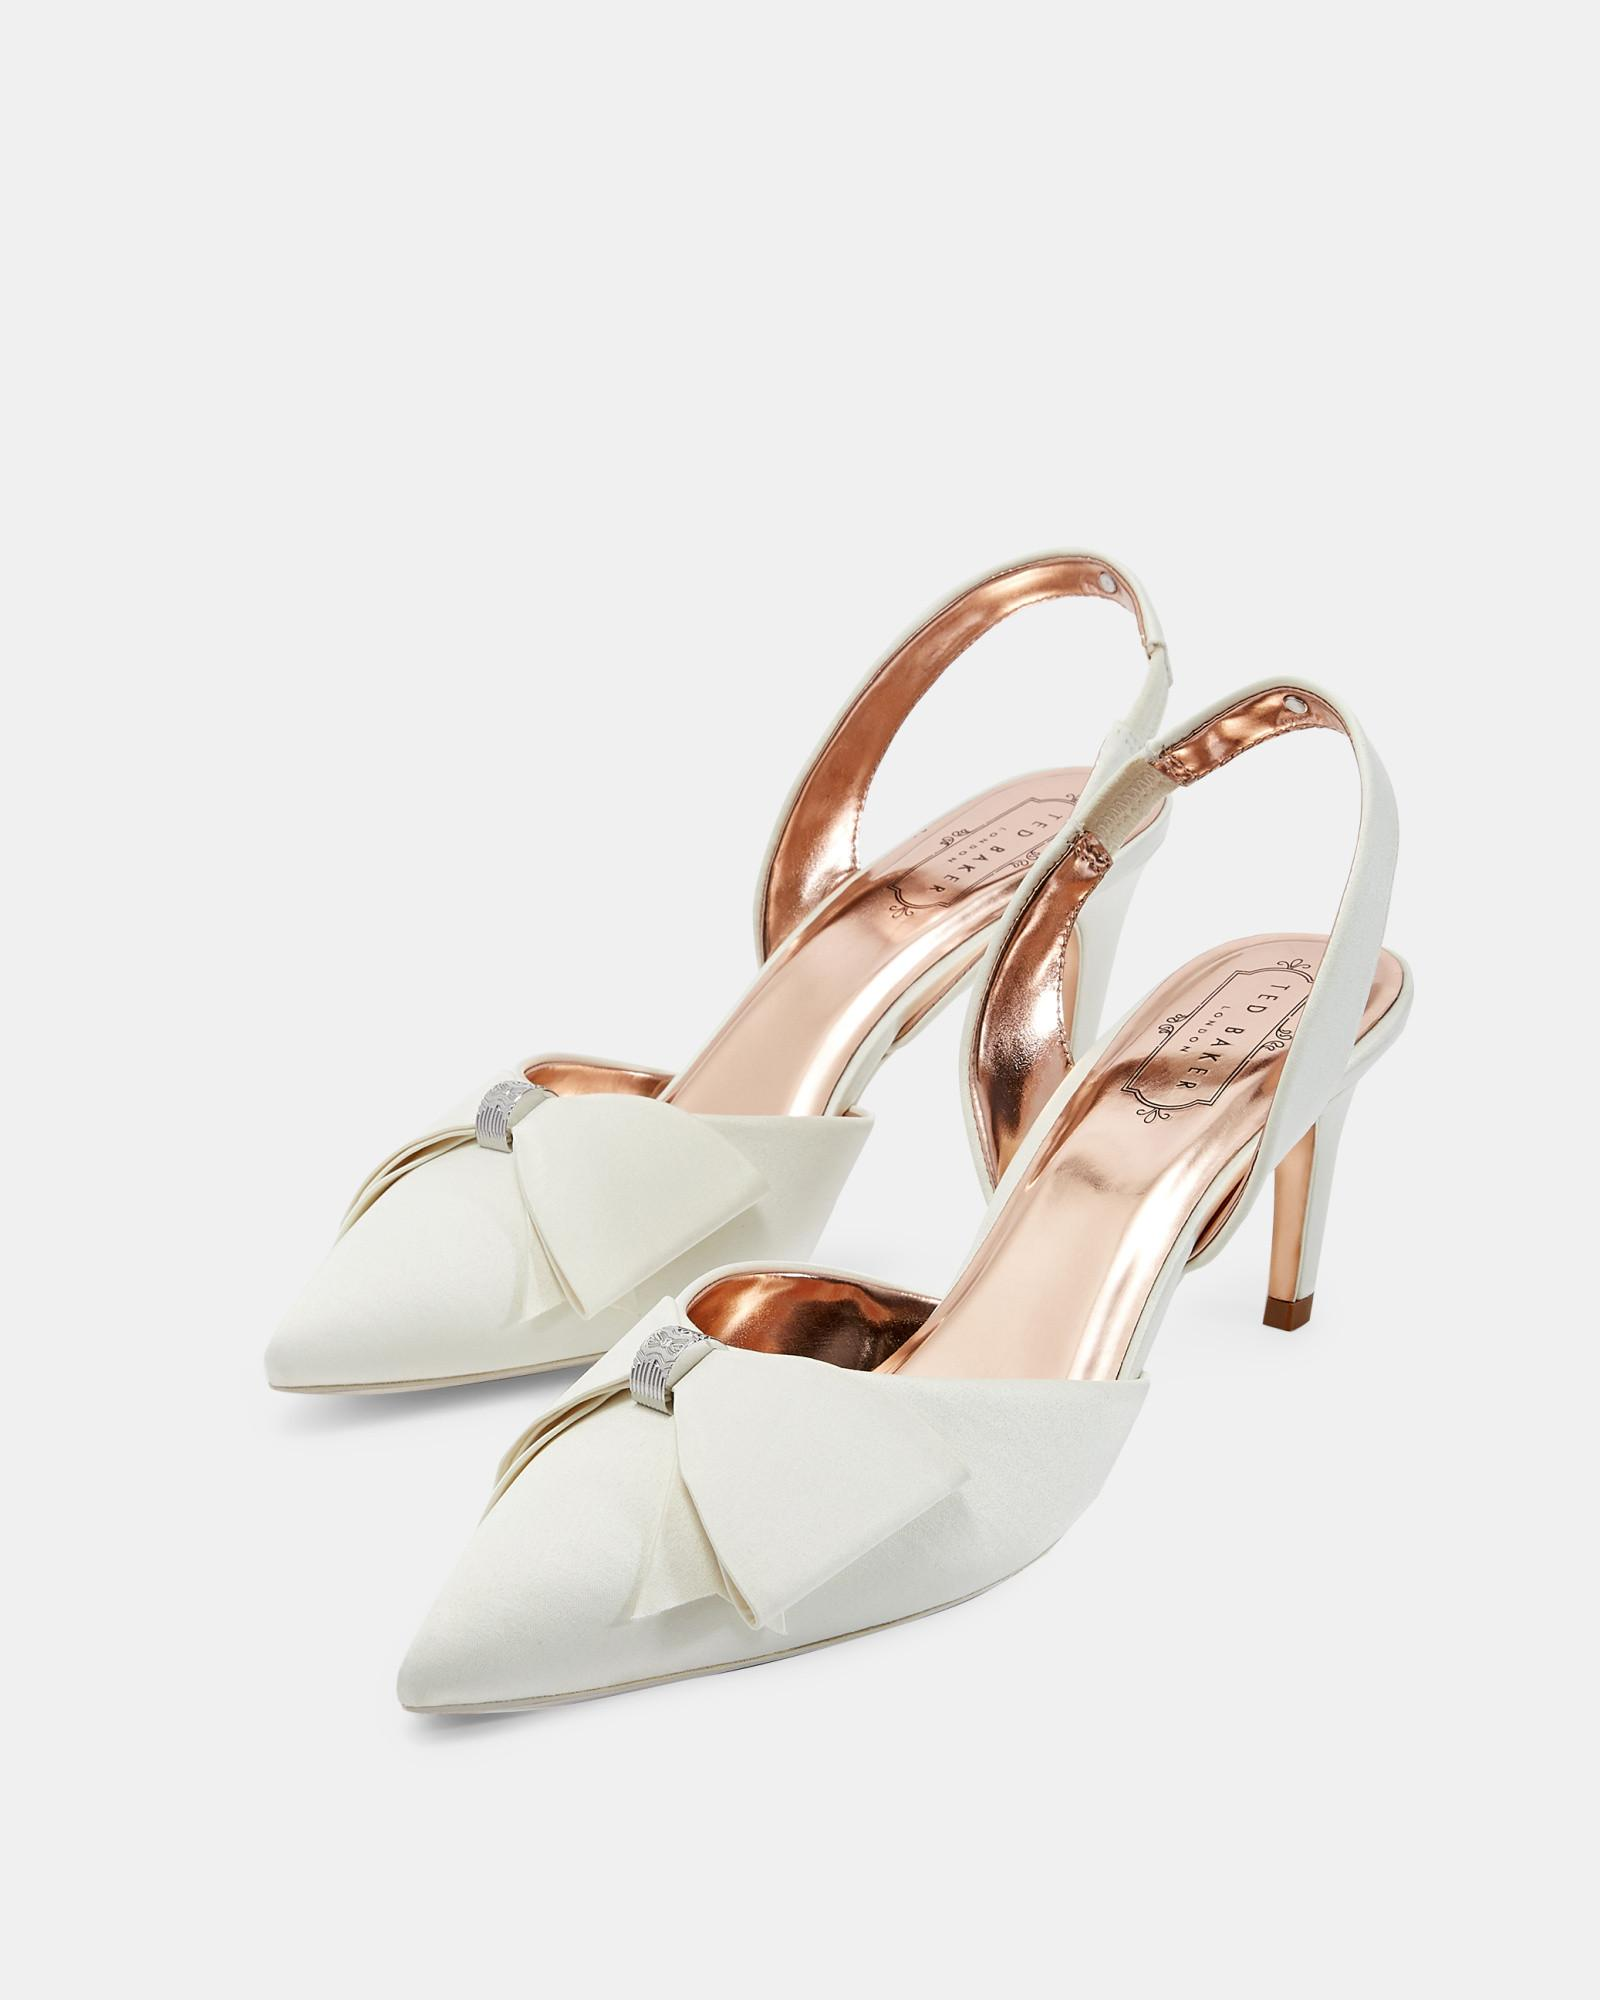 f121934ec27 Ted Baker Bow Detail Sling Back Courts in White - Lyst